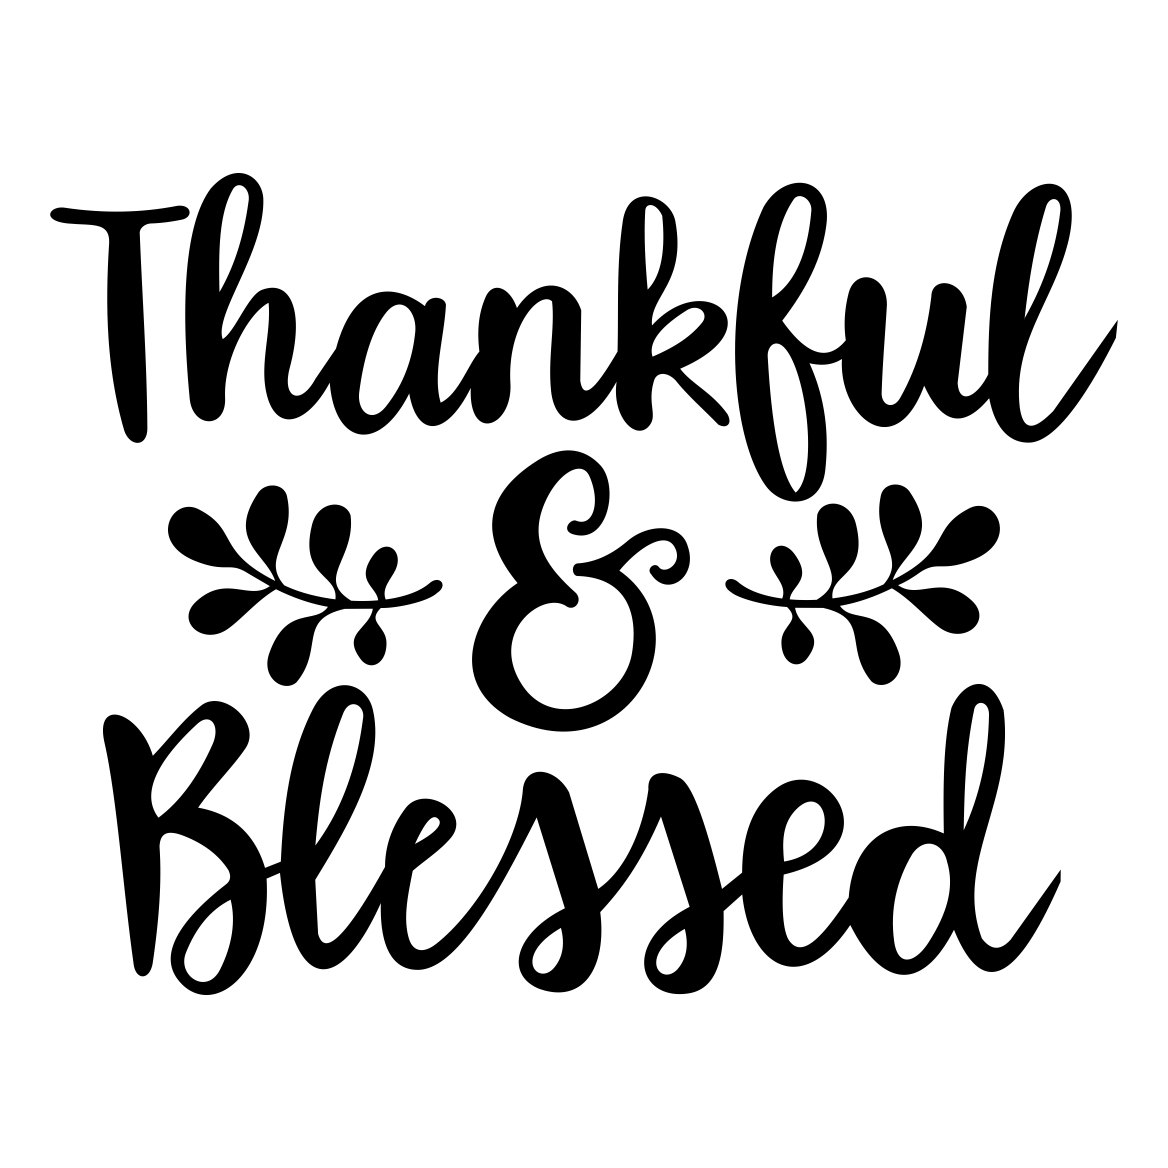 Thankful Blessed 2 Phrase graphics design SVG by